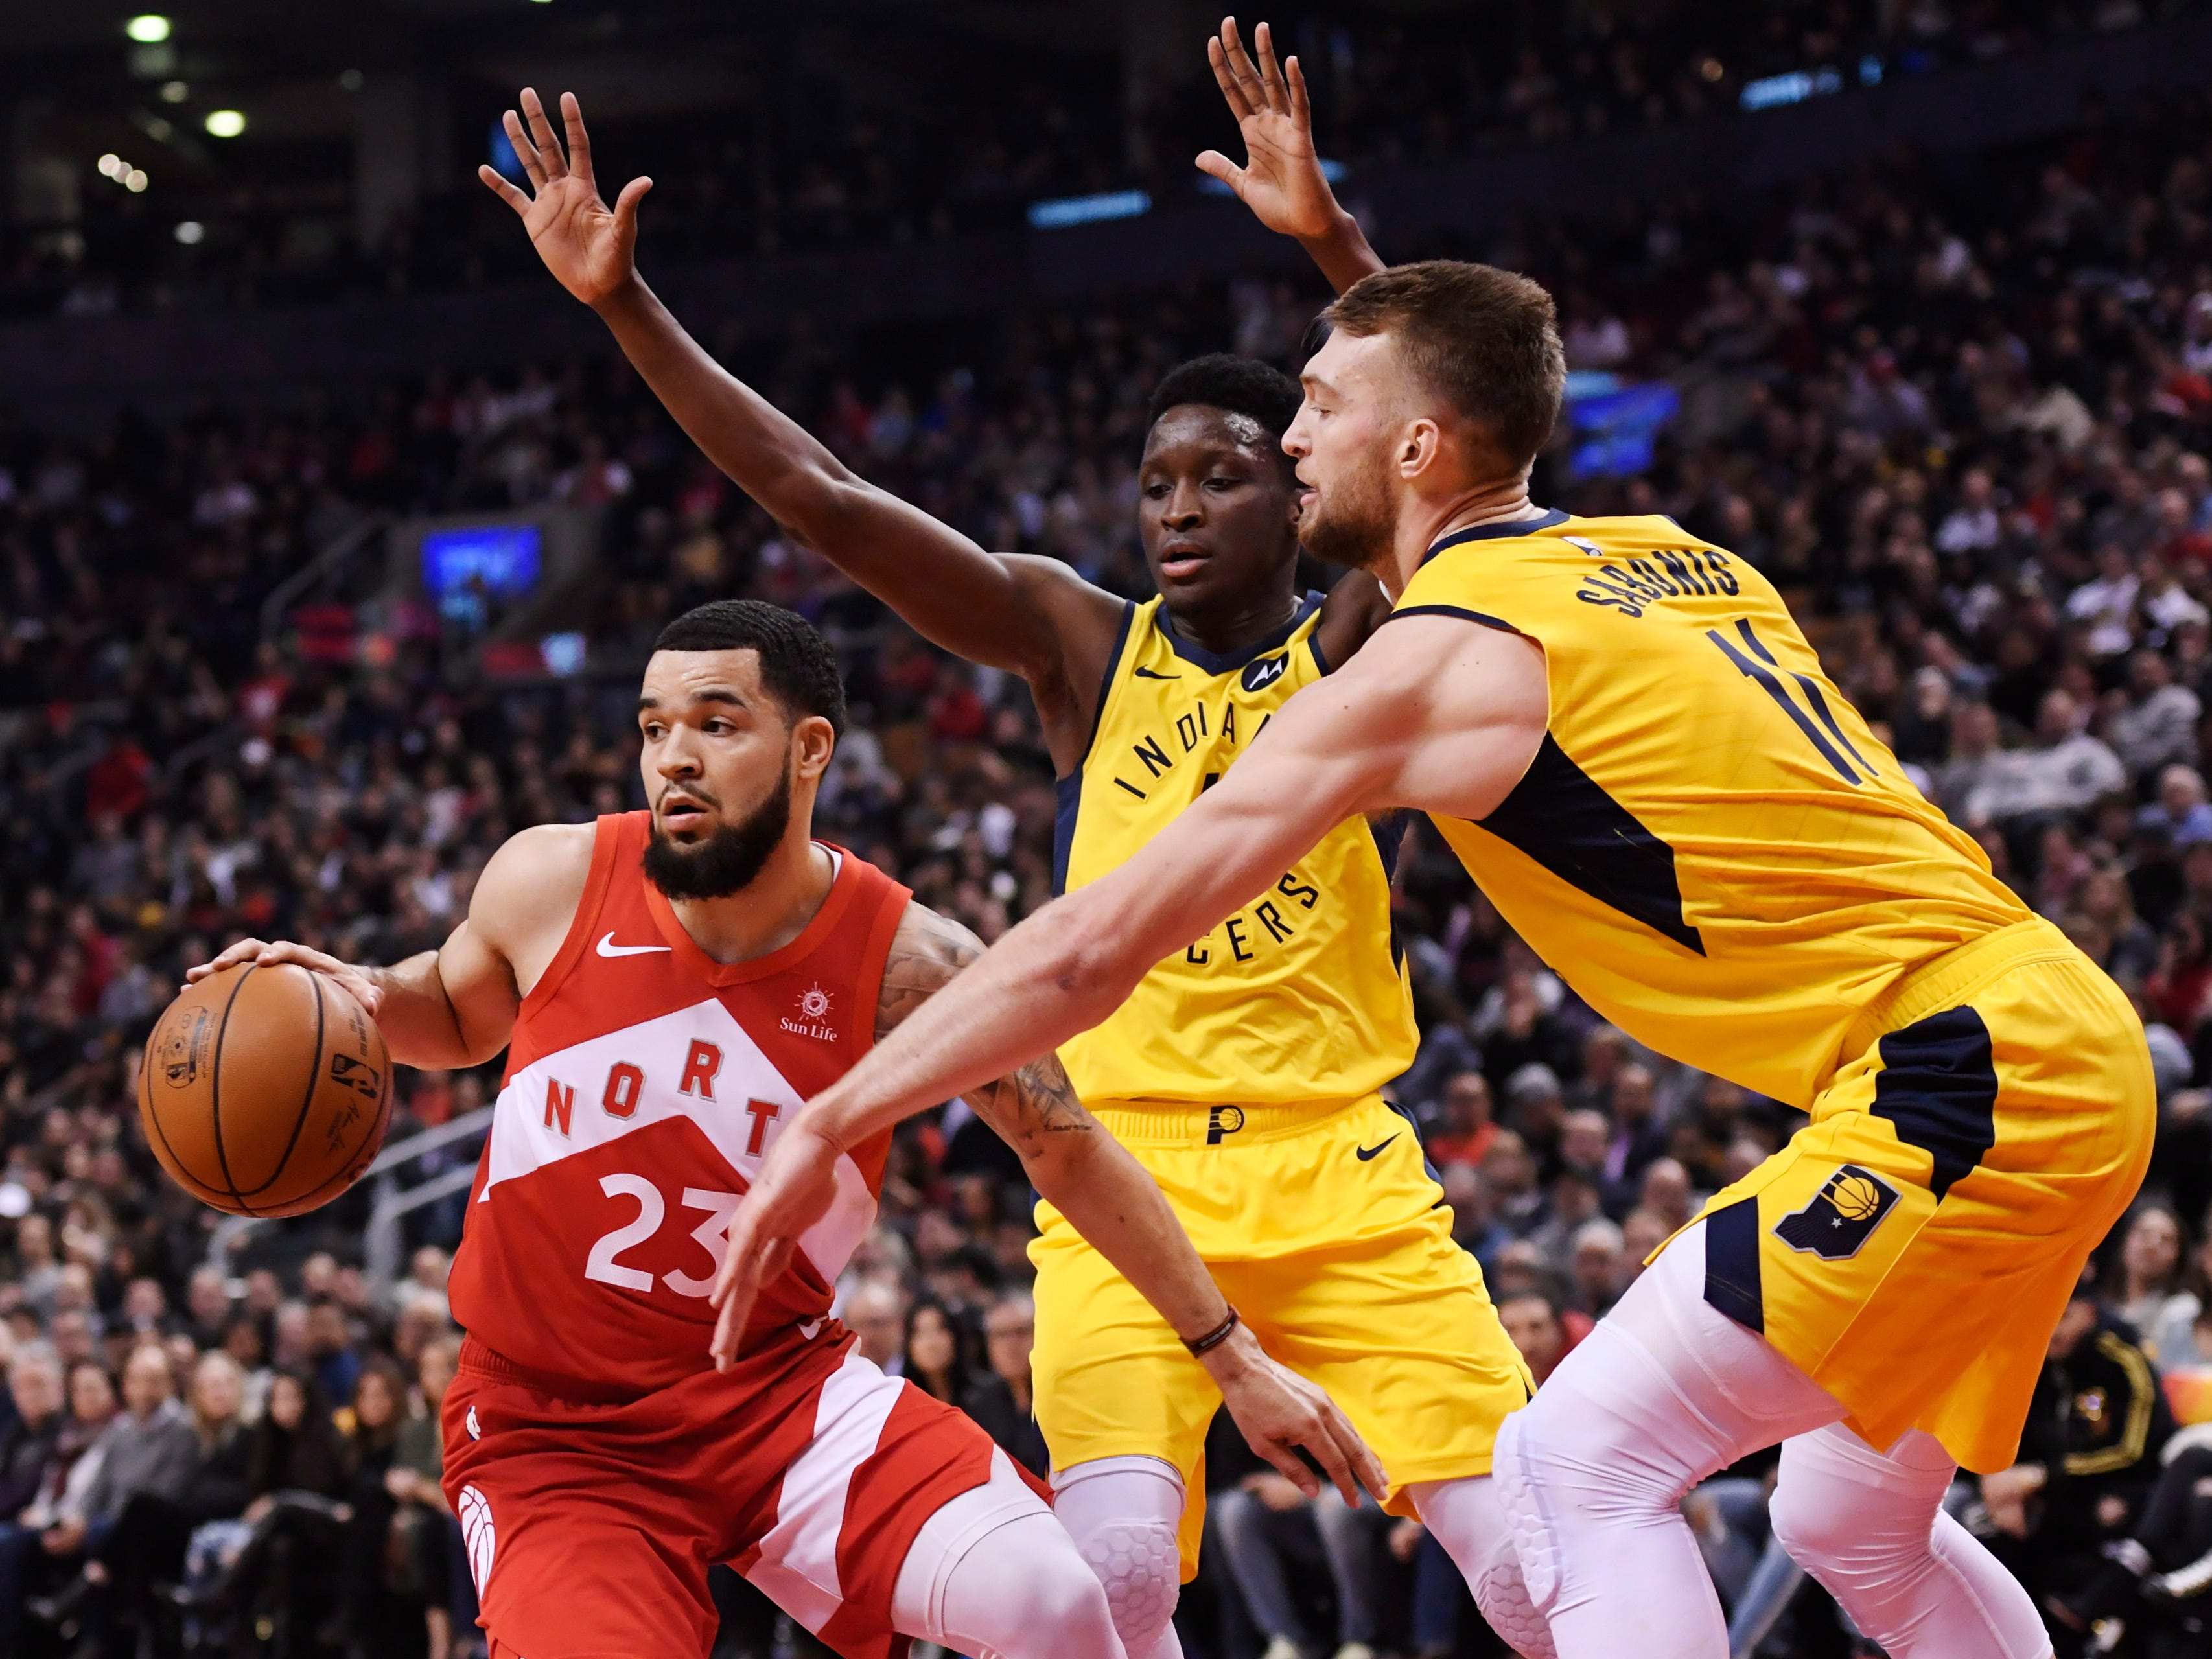 Toronto Raptors guard Fred VanVleet (23) protects the ball from Indiana Pacers guard Victor Oladipo (4) and forward Domantas Sabonis (11) during first half NBA basketball action in Toronto on Sunday, Jan. 6, 2019.